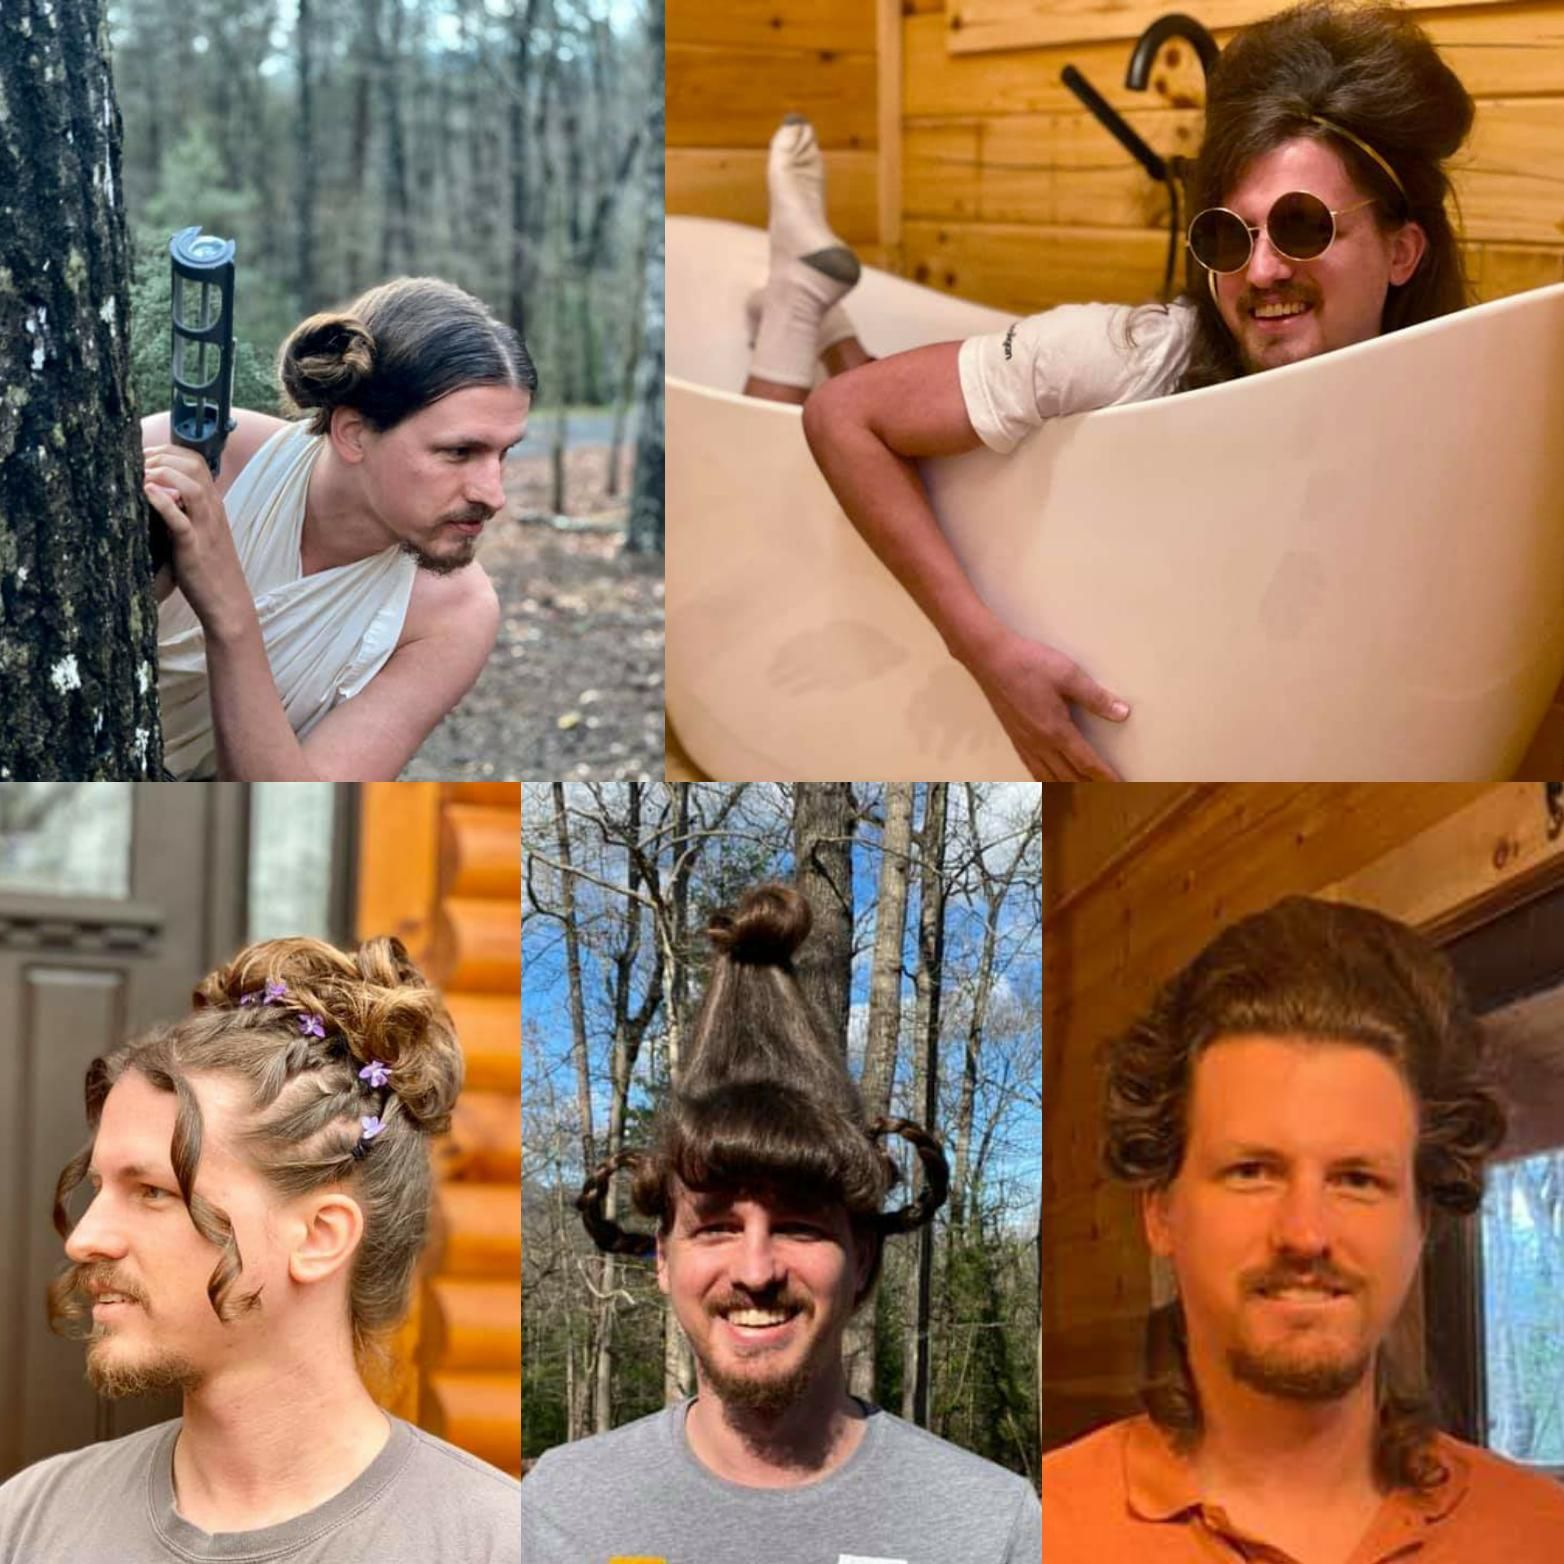 A hairstylist friend of mine is doing her boyfriend's hair each day they are quarantined! So far we have Leia, Amy Winehouse, 90's prom, Cindy Lou Who, and George Washington.